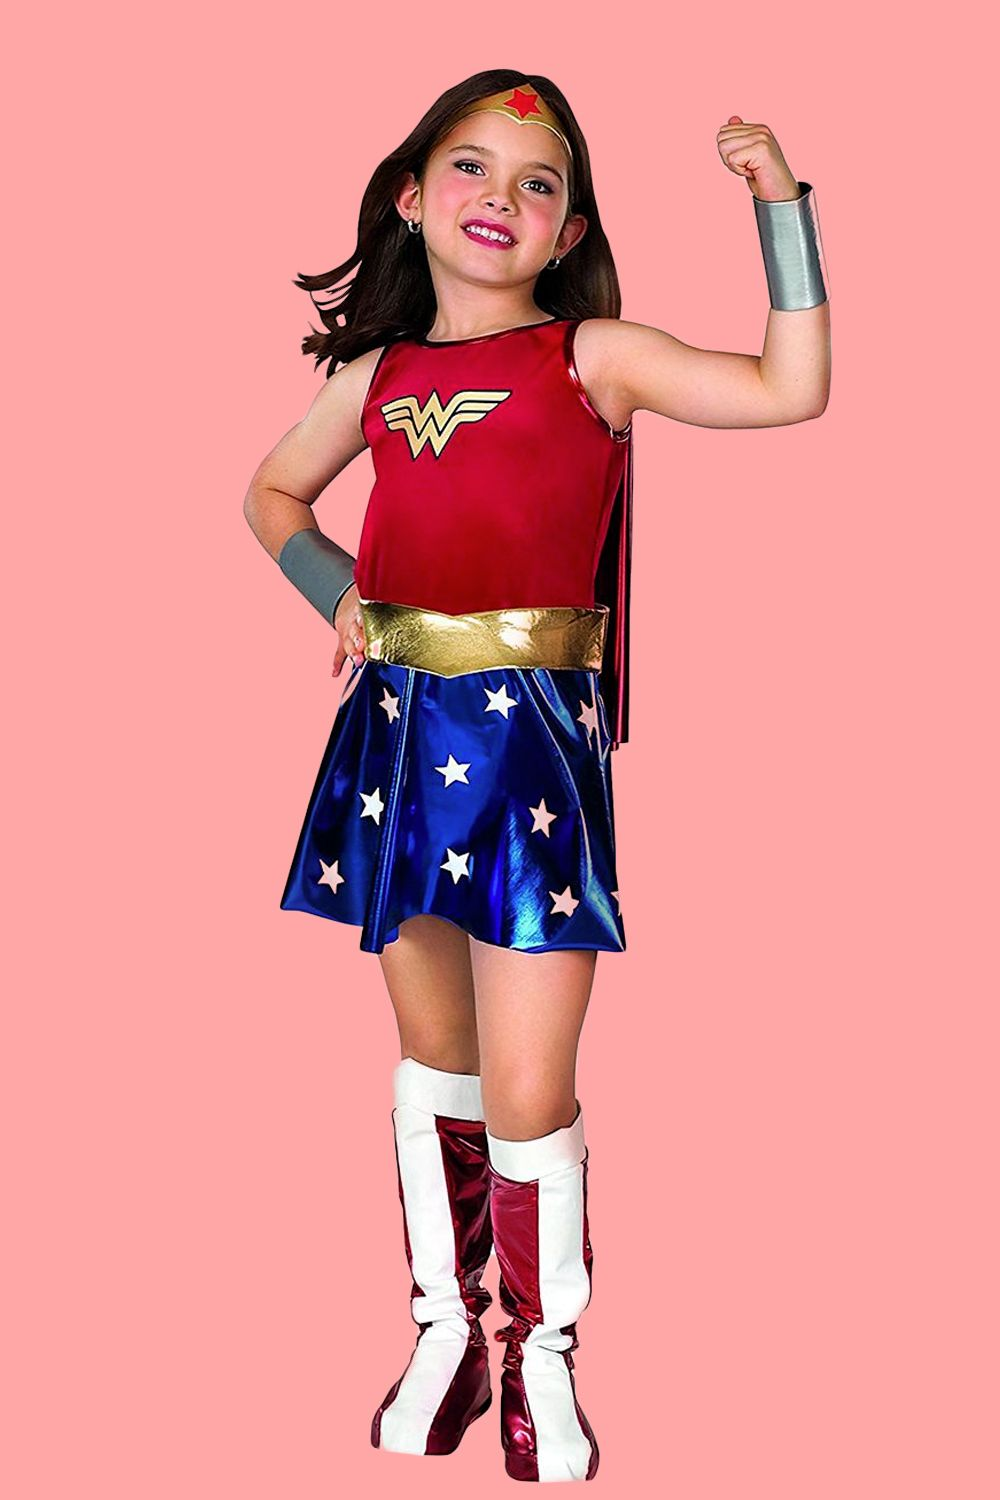 Corner Halloween Costumes Childrens Thing One Childrens Costumes Halloween Costumes Kids 2018 Ideas Thing Two Costumes Uk Kids 2018 Ideas Thing Two Costumes Party City Thing One baby Thing One And Thing Two Costumes